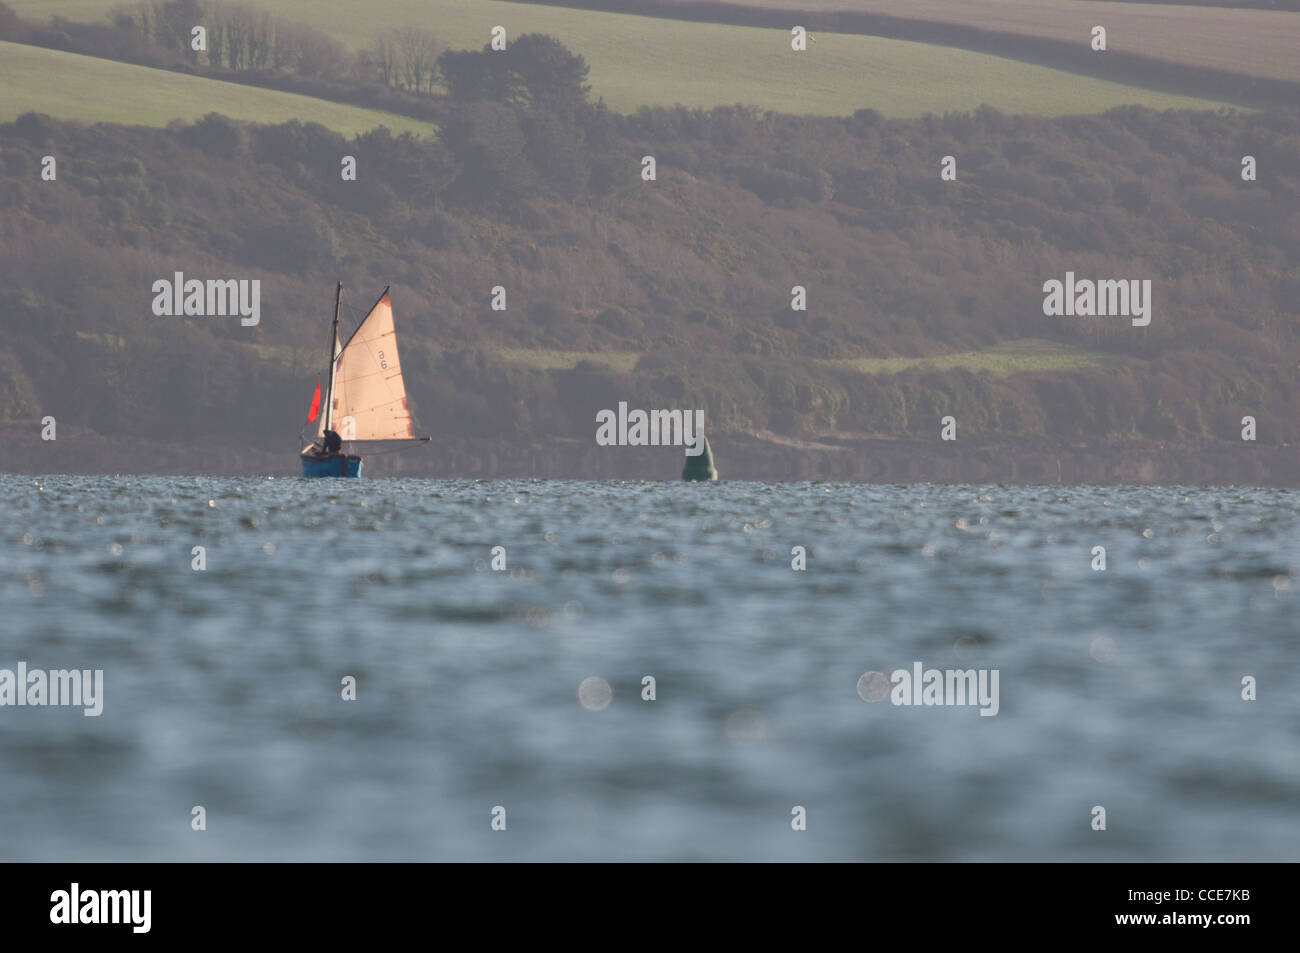 Sailing boat in the Carrick Roads - Stock Image